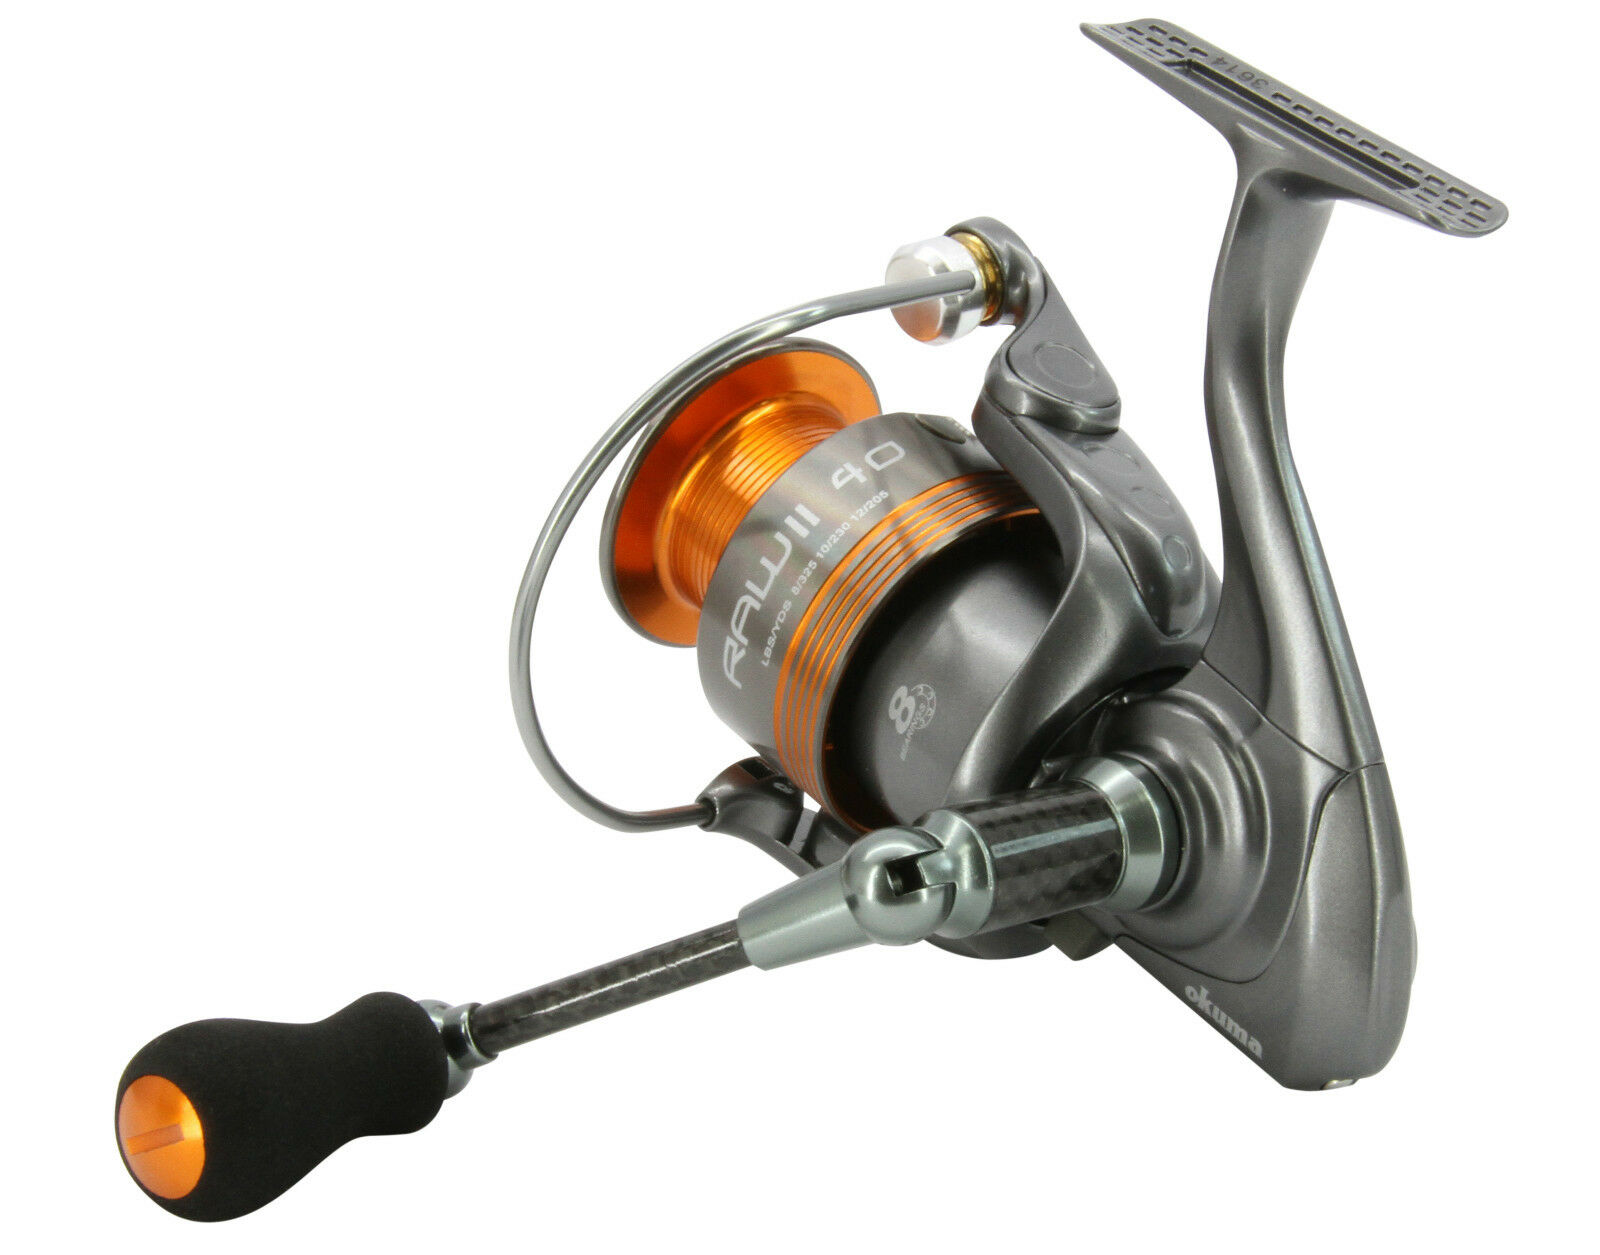 OKUMA RAW II 30 FISHING REEL REEL MATCH SPIN REEL FISHING SEA PIER BEACH DROP SHOT BASS PIKE 8d7cb8